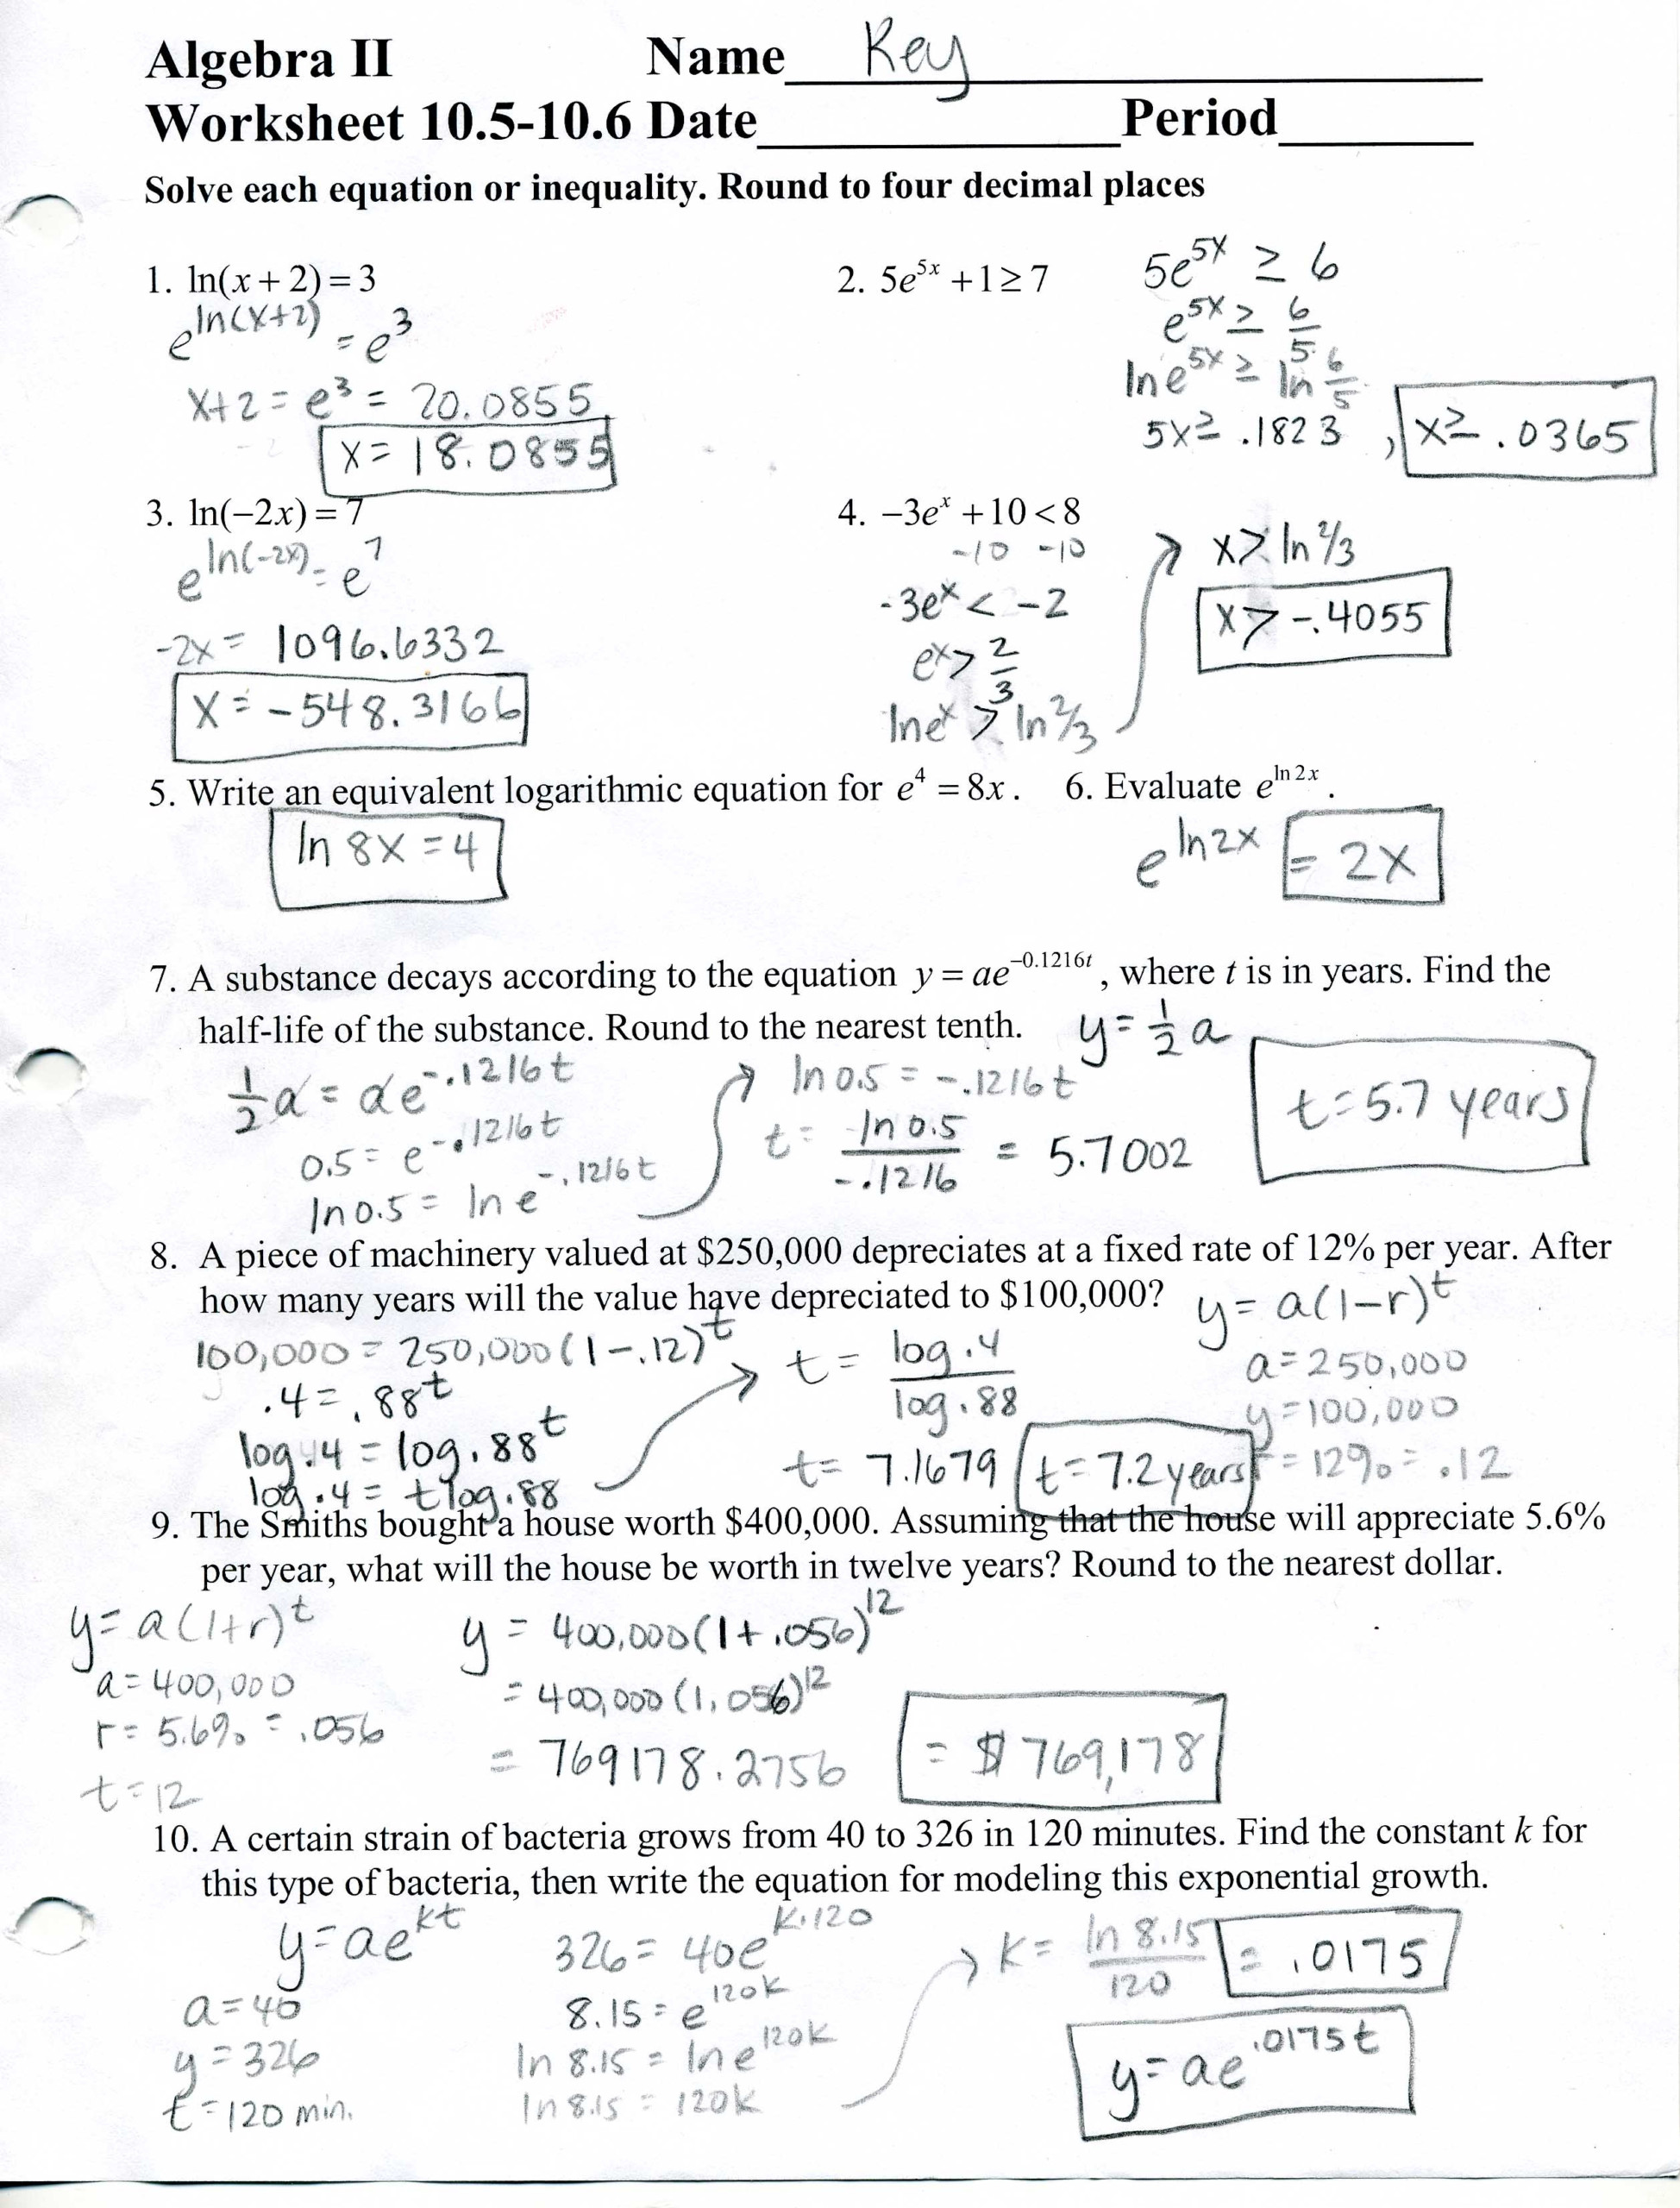 Algebra 2 Worksheet 8 2 Answers